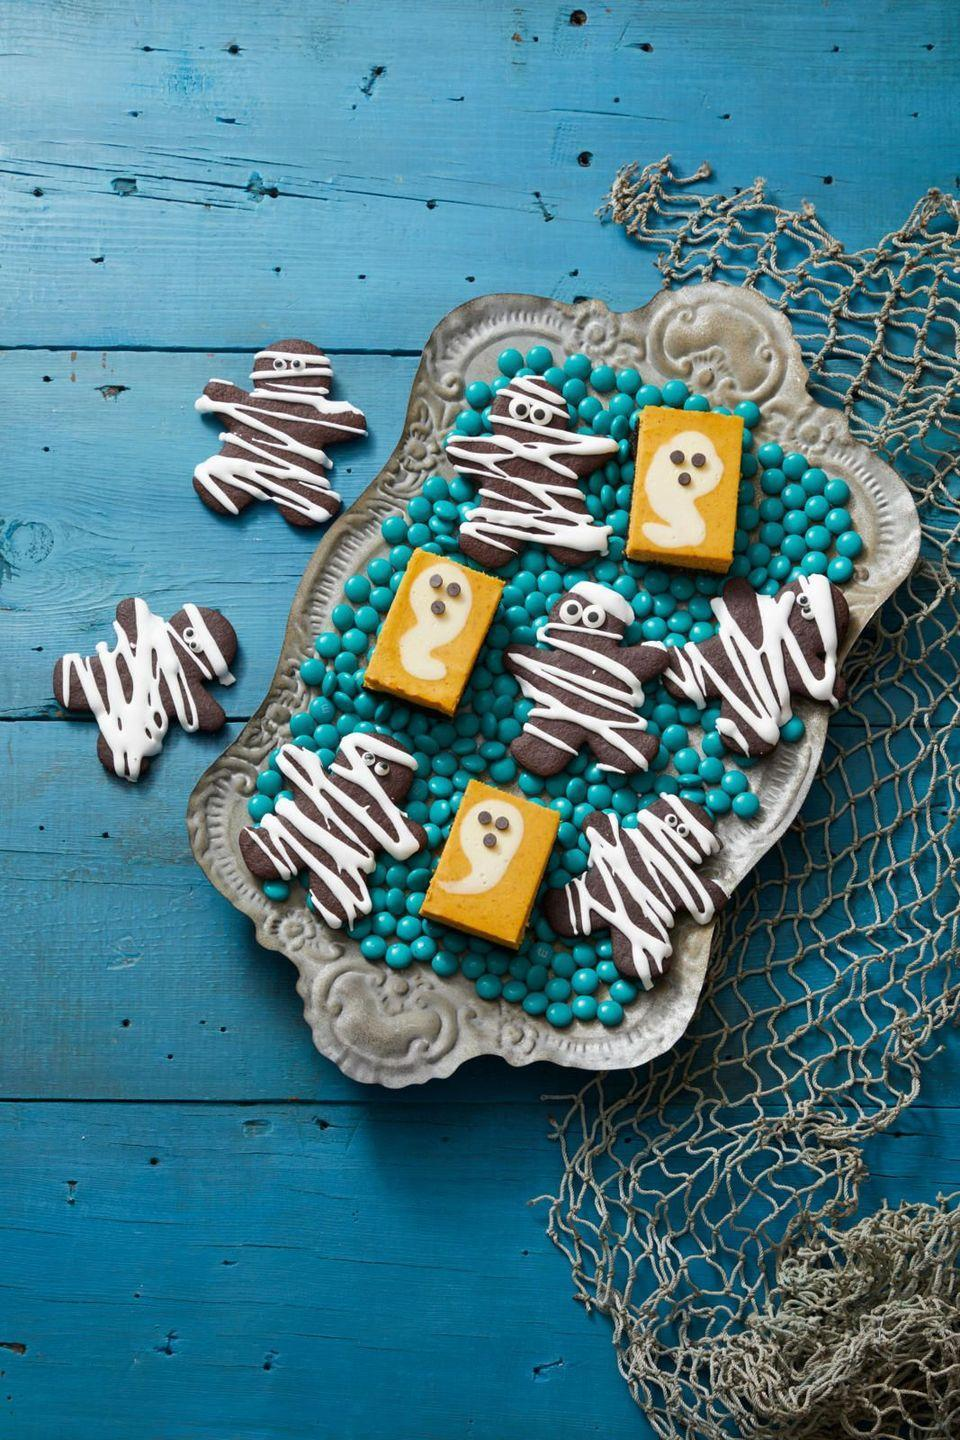 """<p>For a fork-free dessert, you can't go wrong with these pumpkin cheesecake bars. And they get extra festive with the addition of some ghost-shaped cream cheese filling.</p><p><em><strong><a href=""""https://www.womansday.com/food-recipes/a33562053/pumpkin-cheesecake-ghosts-recipe/"""" rel=""""nofollow noopener"""" target=""""_blank"""" data-ylk=""""slk:Get the Pumpkin Cheesecake Ghosts recipe."""" class=""""link rapid-noclick-resp"""">Get the Pumpkin Cheesecake Ghosts recipe. </a></strong></em></p>"""